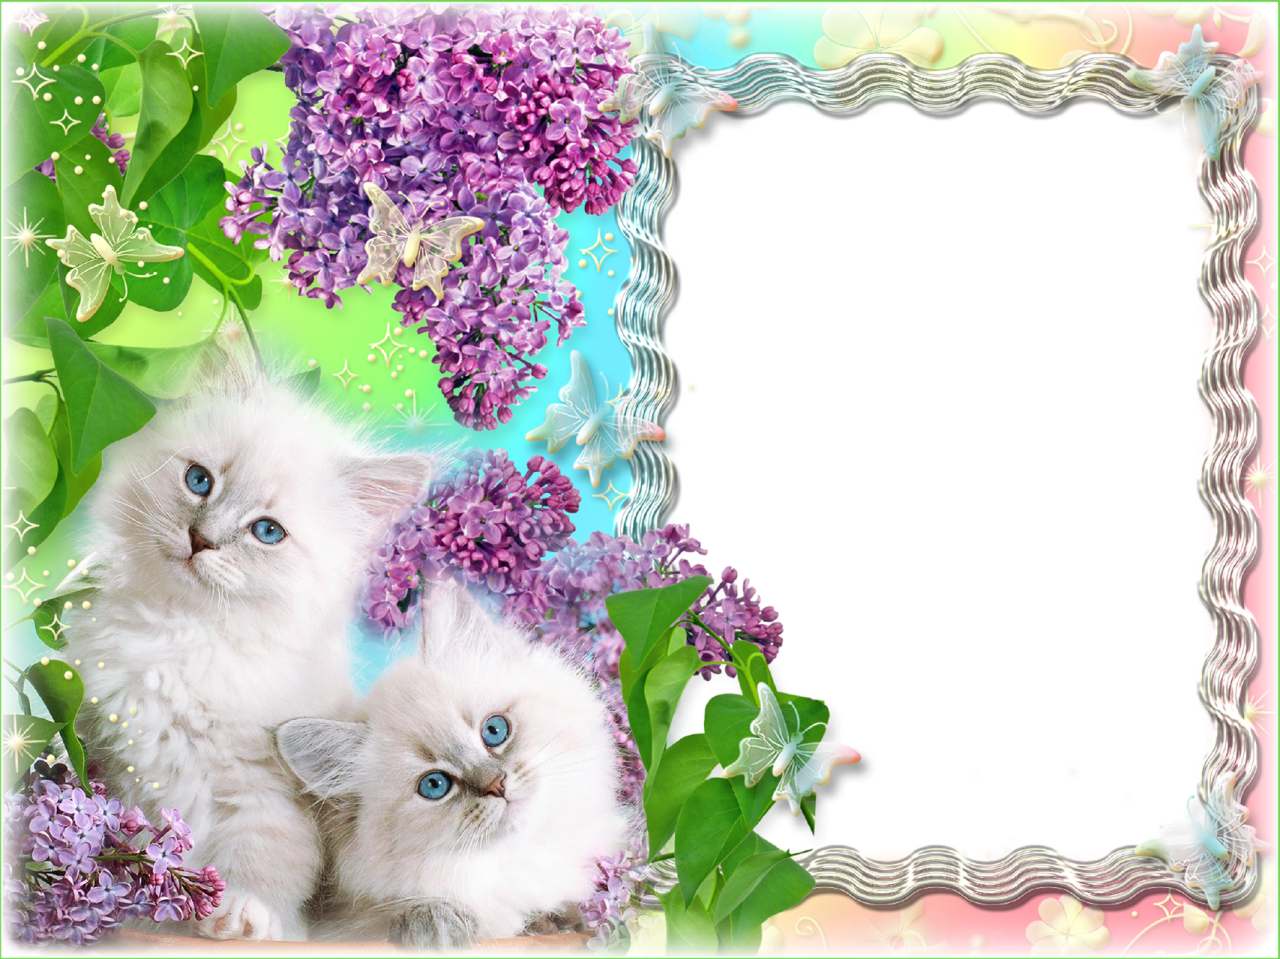 transparent purple frame floral photo frame which depicts cute kittens with blue eyes in